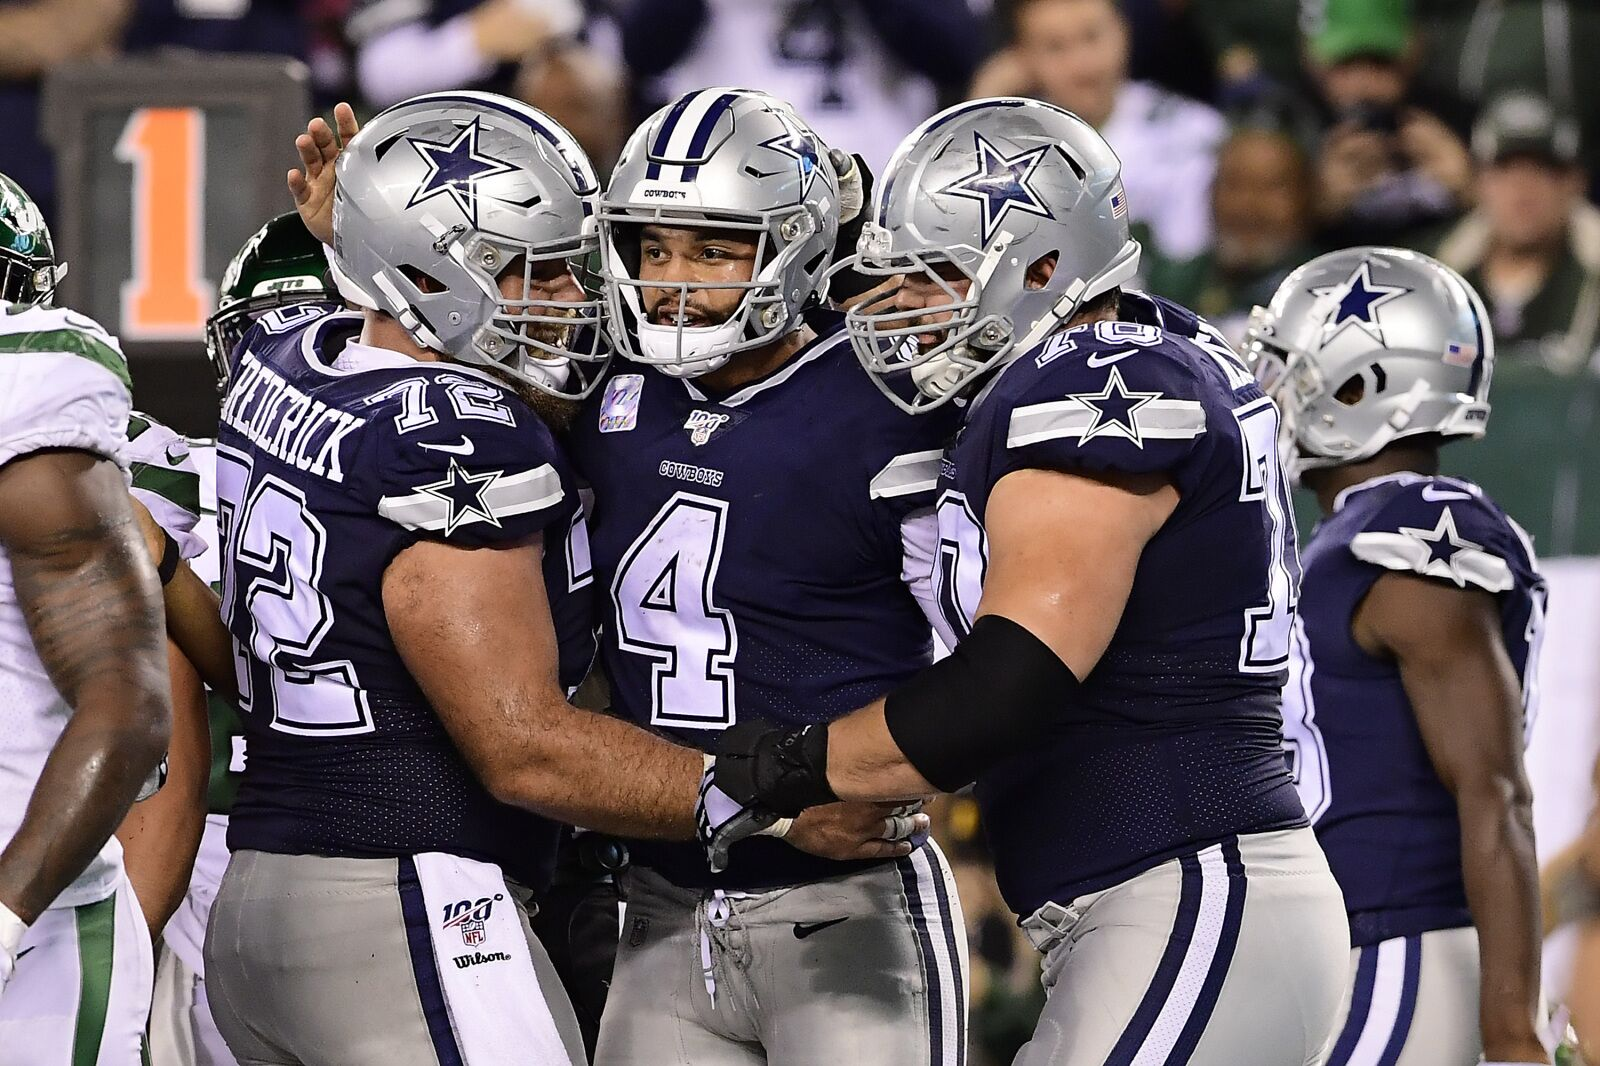 Dallas Cowboys proving contract extension best left undone